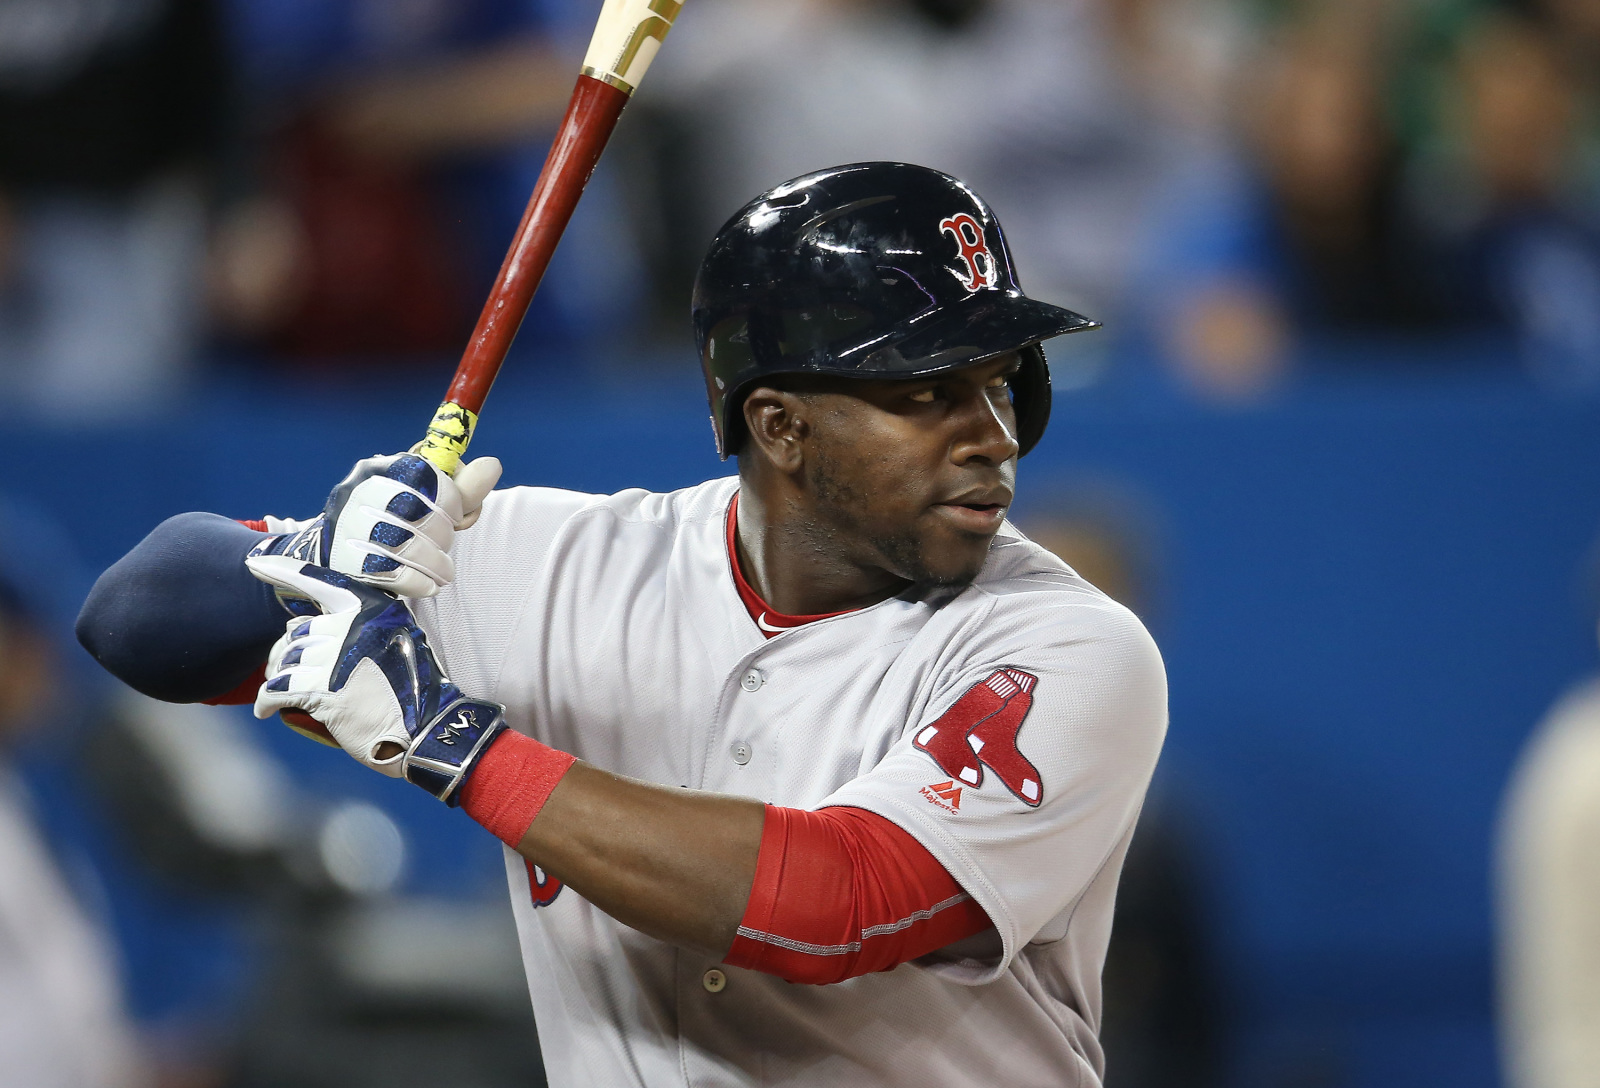 Boston Red Sox outfielder Rusney Castillo preparing for his contract year